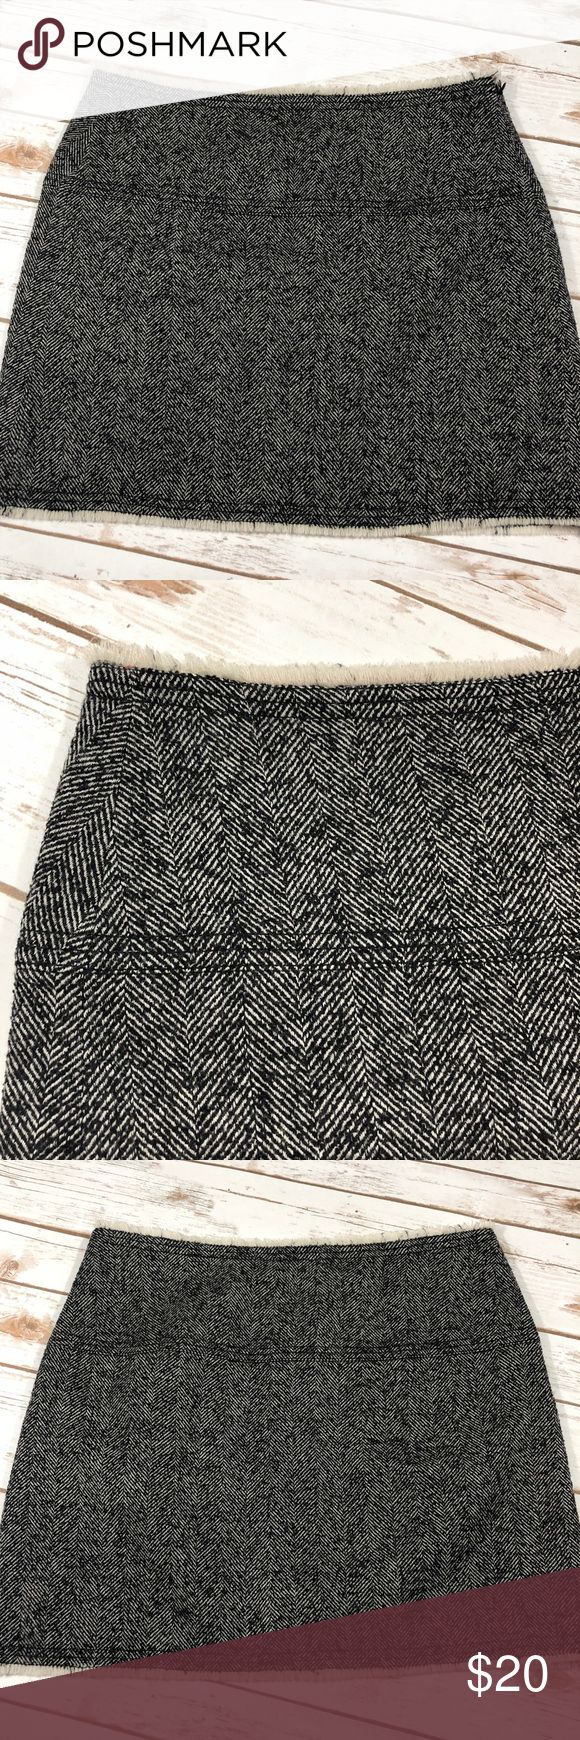 J. Crew Wool Black & White Mini Skirt 8 Super adorable with a side zip closure the waist measures 16.5 in the length is 16in. The hip measures approx 18.5in. 90% Wool 10% nylon. Dry clean only . Any questions please ask J. Crew Skirts Mini